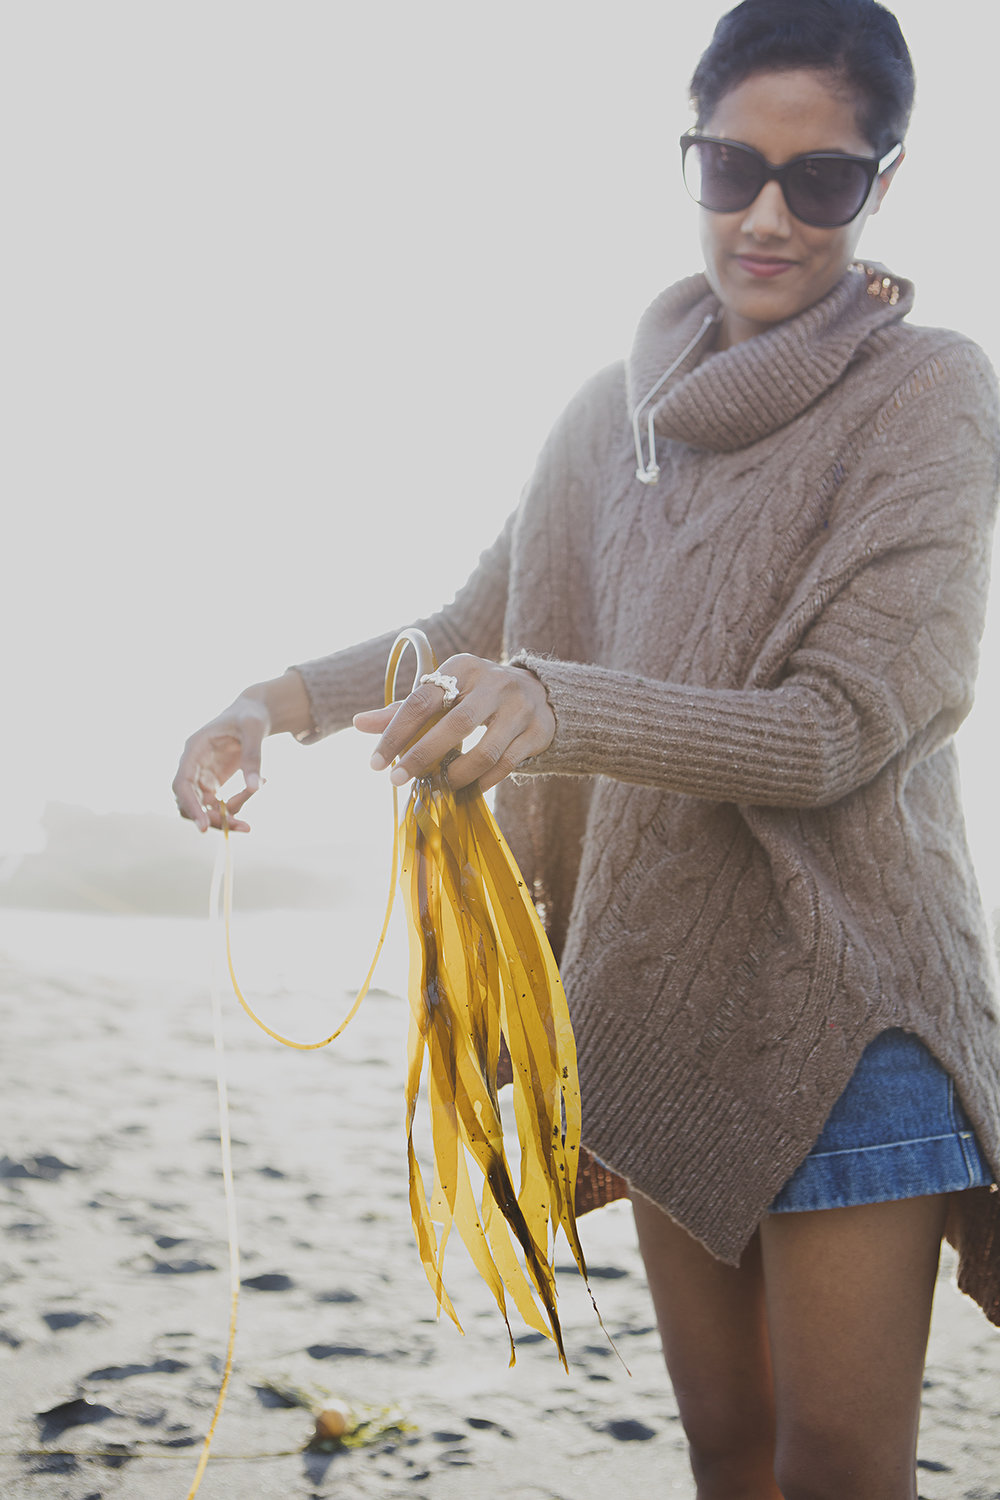 Shilpi researching seaweed in Mendocino wearing the  Alex Ring  and  Dylan Necklace